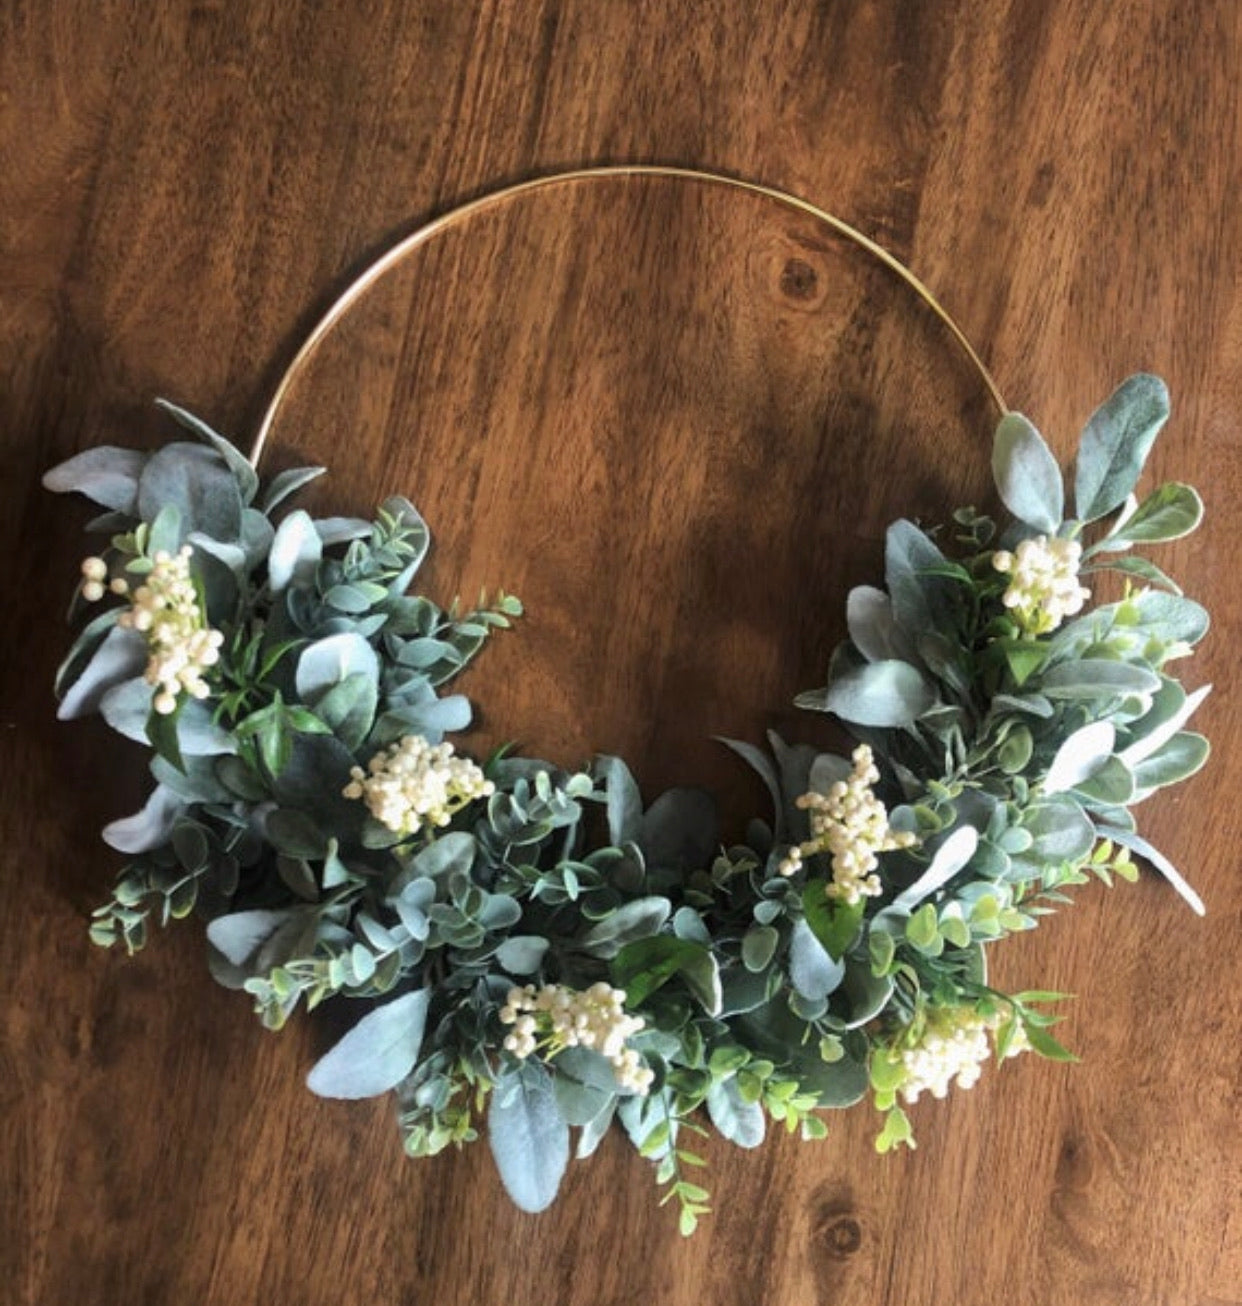 Minimalist Boho Cream Berry Wreath